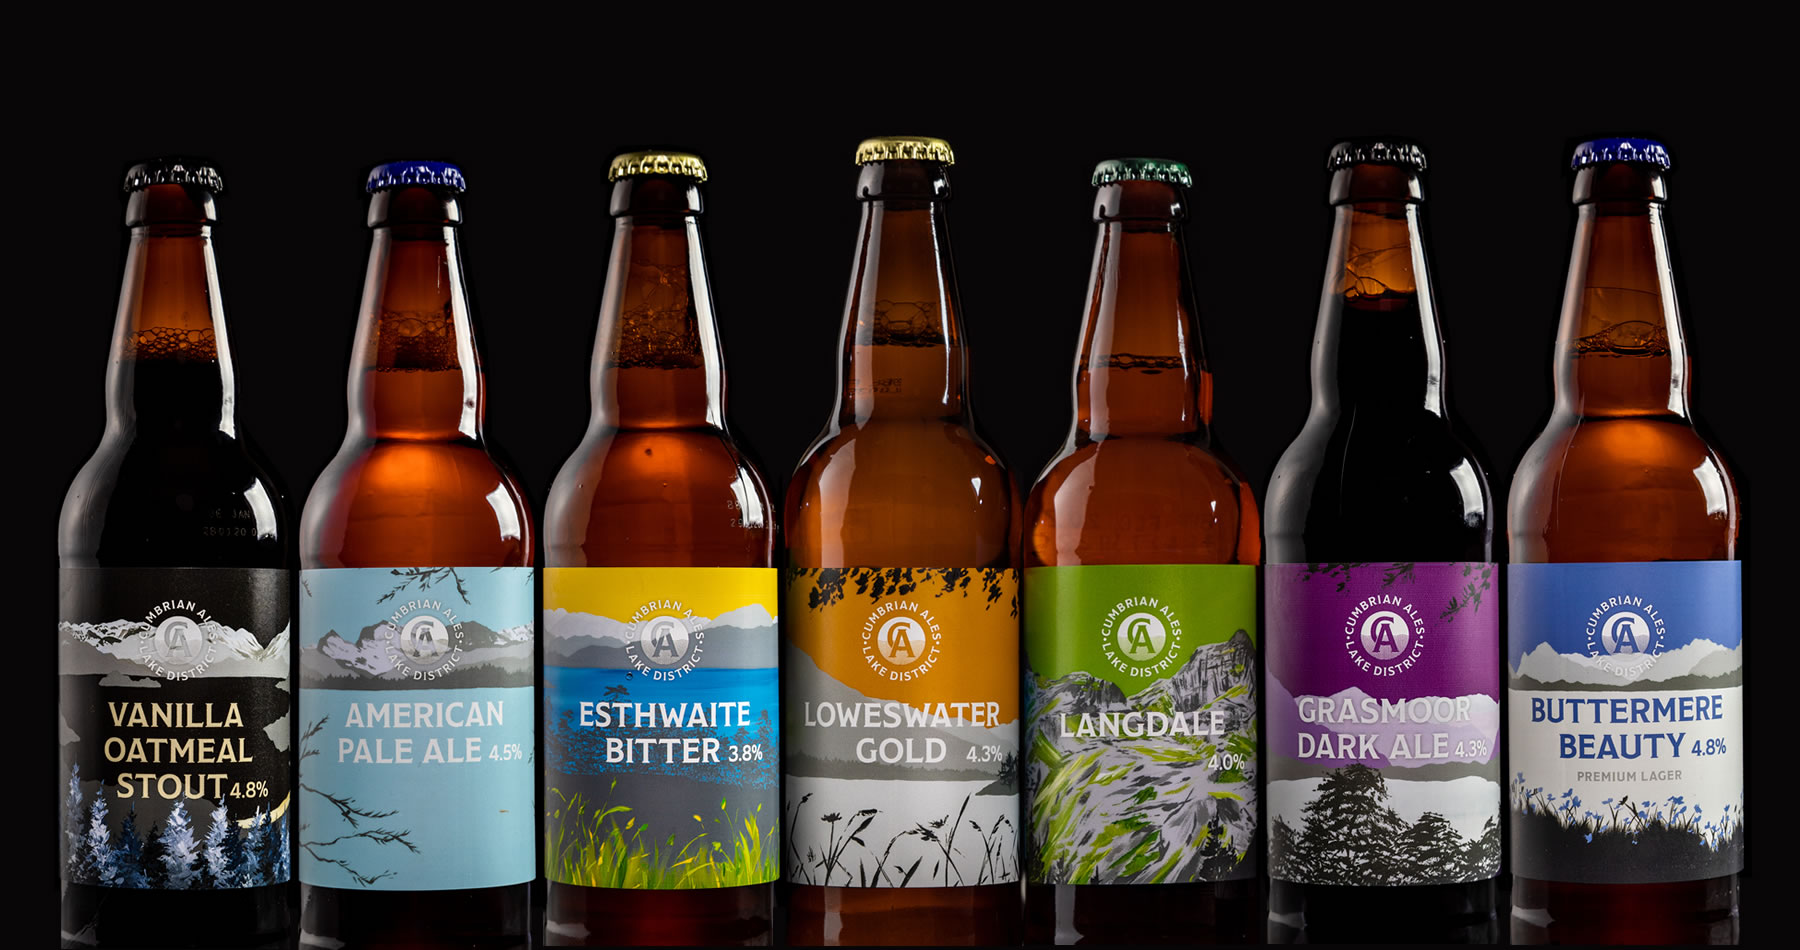 Cumbrian Ales Range of Beers